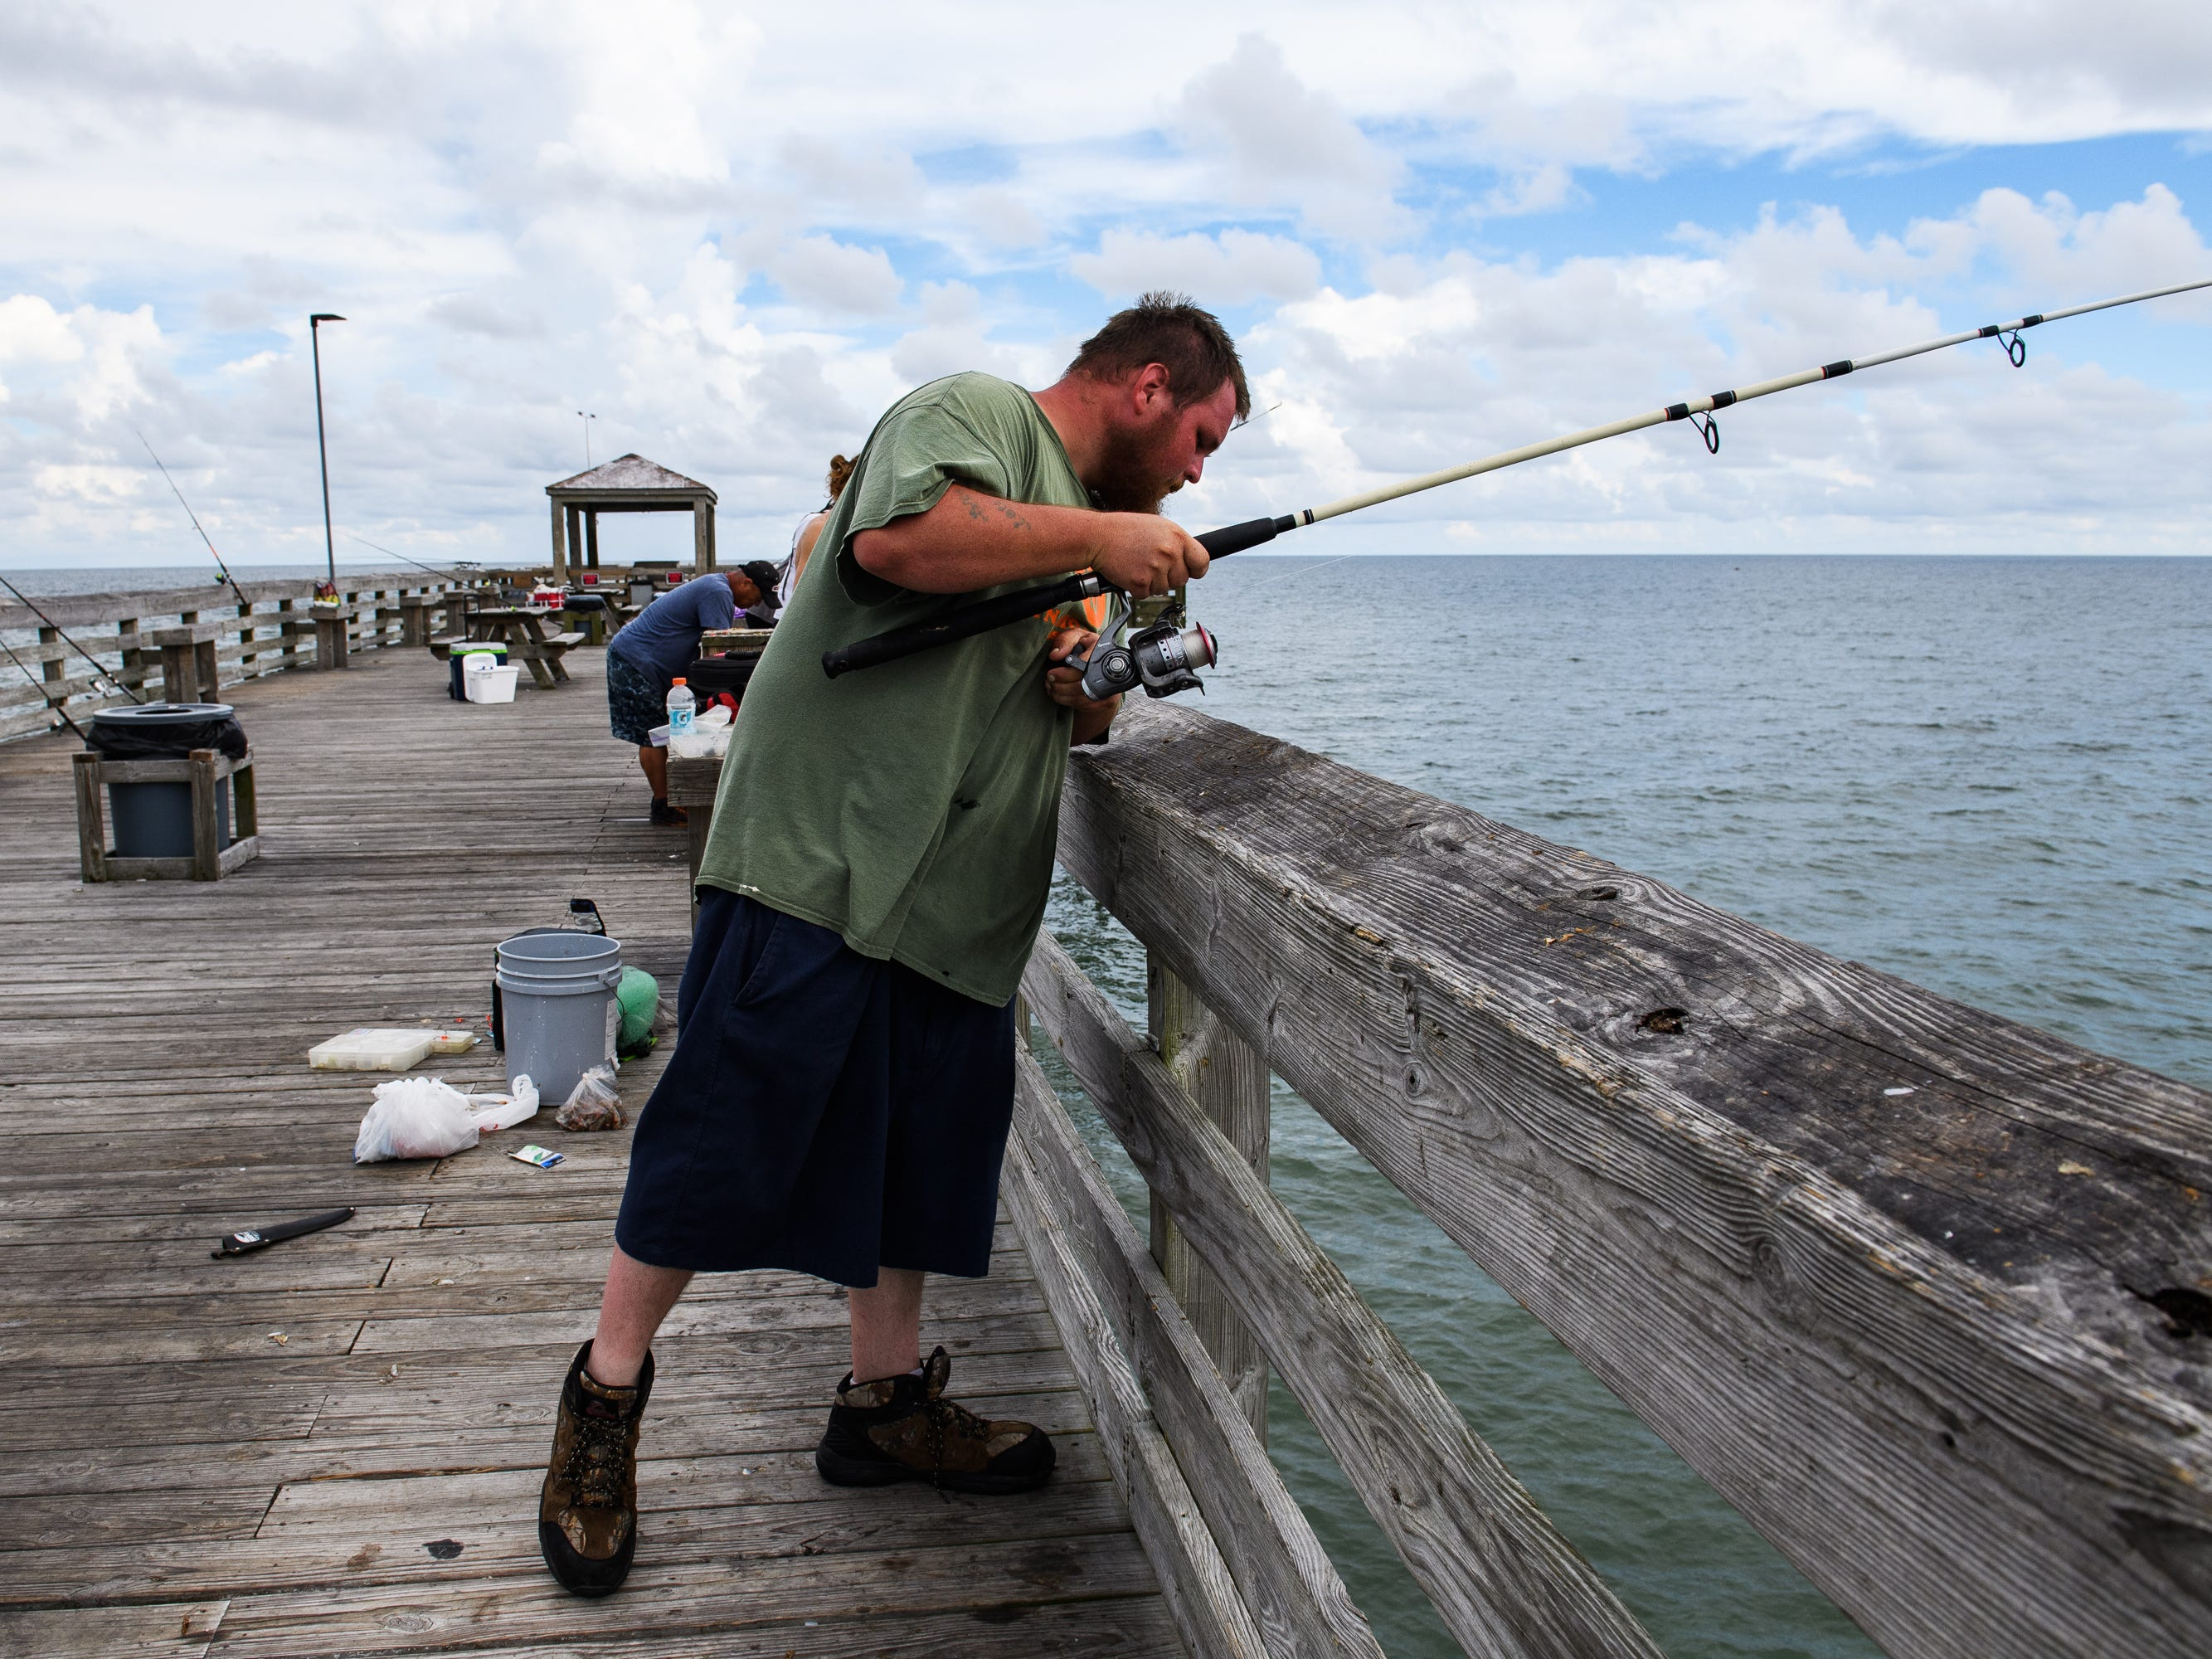 Randy Abercrombie of Lexington, S.C. fishes on the Second Avenue Pier in Myrtle Beach on Tuesday, Sept. 11, 2018. Abercrombie and his family came to Myrtle Beach for vacation but will be evacuating ahead of Hurricane Florence's arrival.